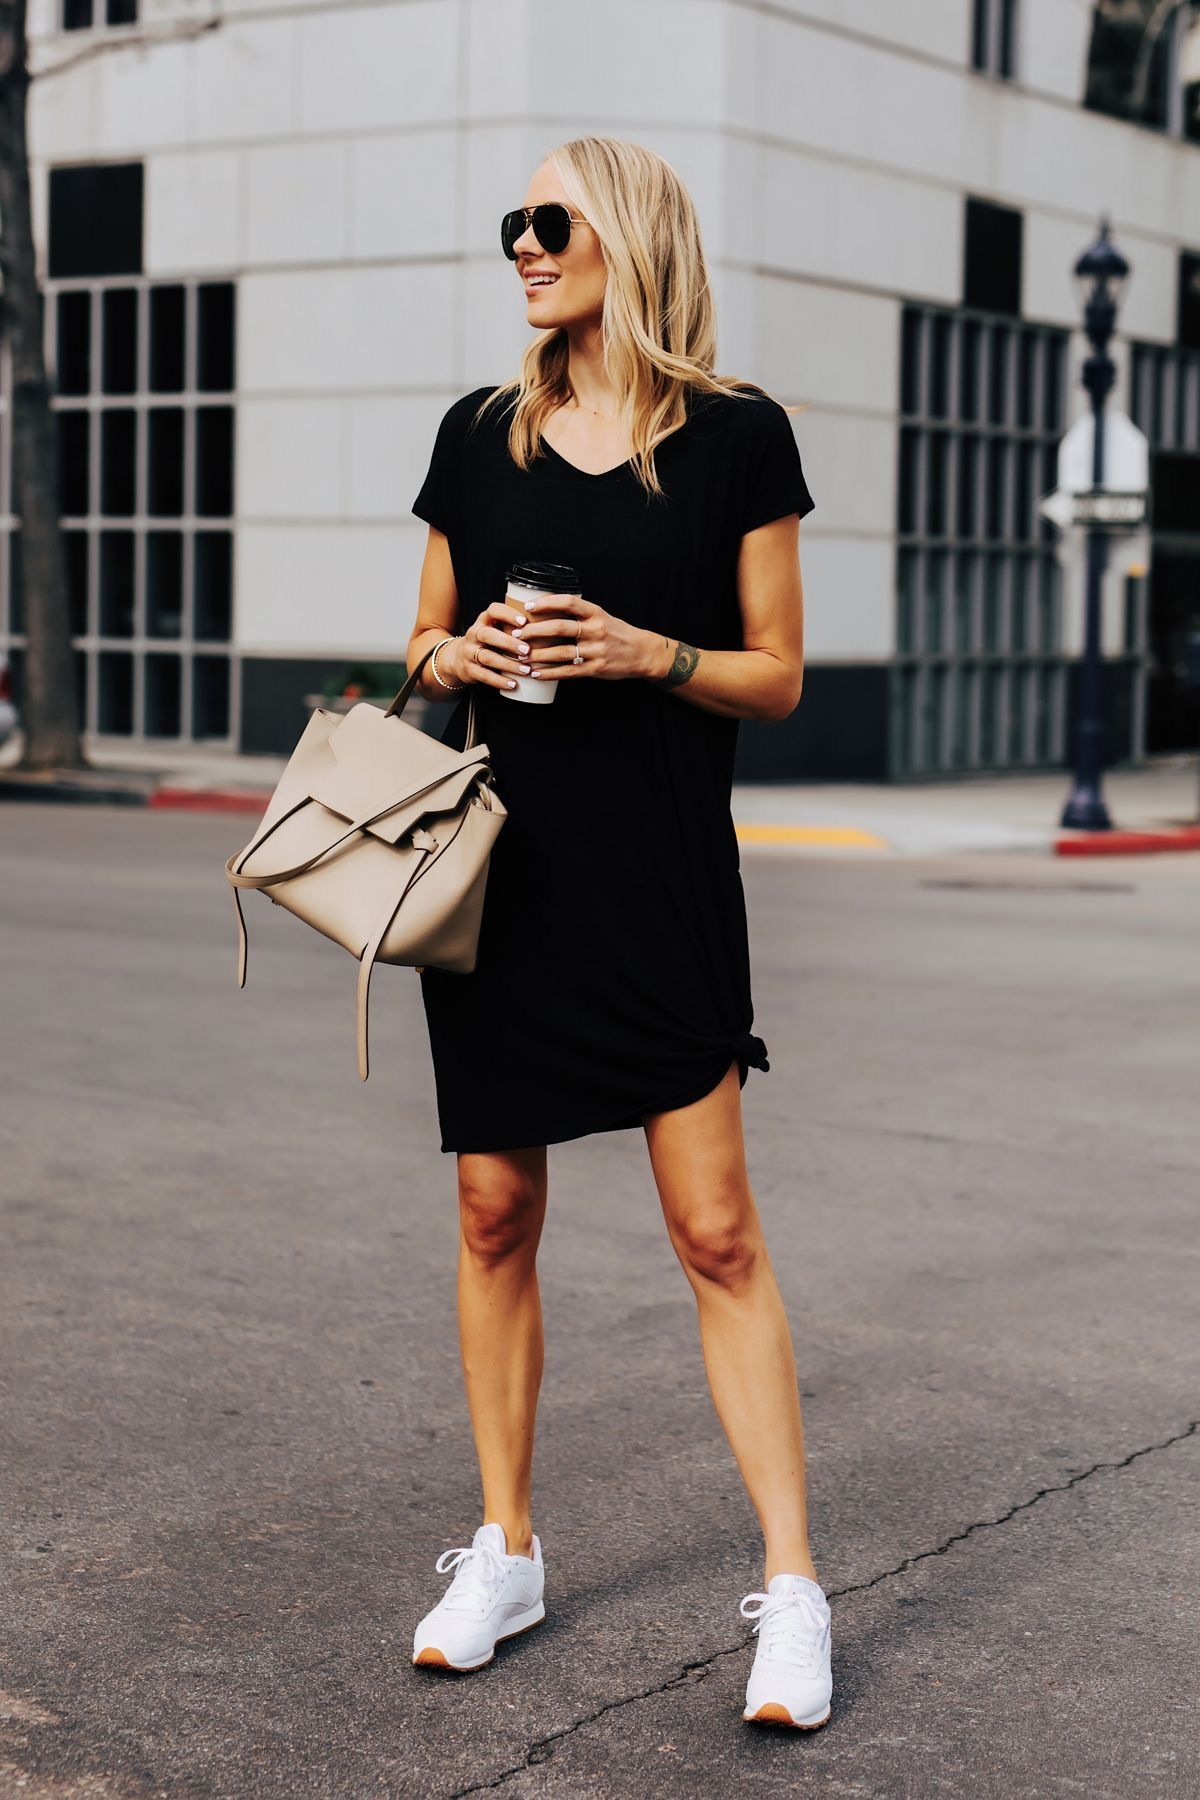 40 Ways To Style A Dress And Sneakers Daily Styled By Nicole Black Tshirt Dress Fashion Jackson Fashion [ 1800 x 1200 Pixel ]